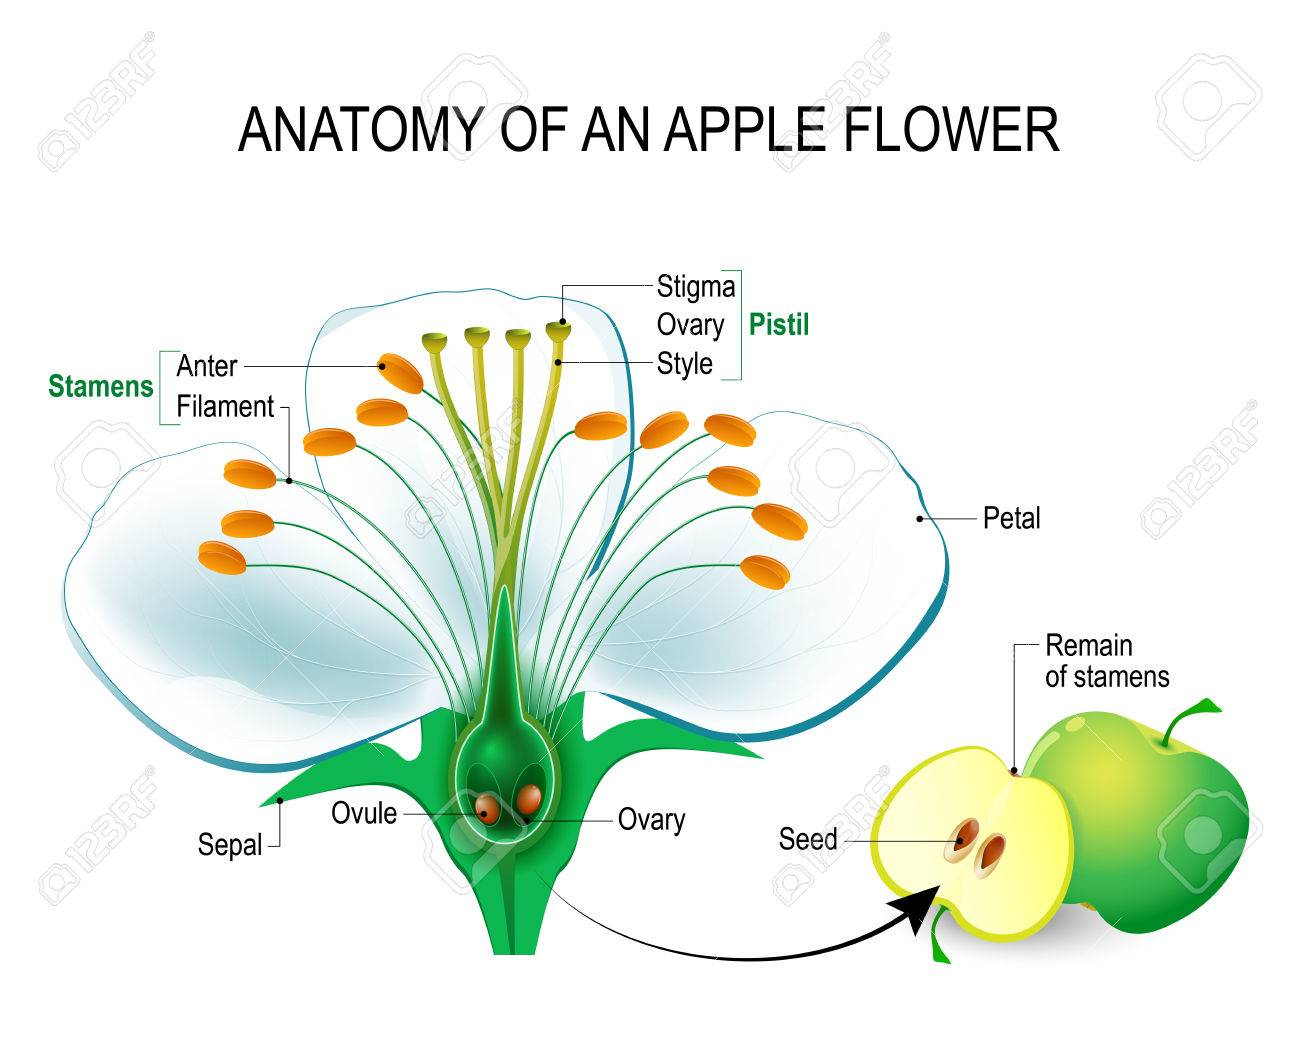 Anatomy of an apple flower. Flower Parts. Detailed Diagram with cross section. useful for study botany and science education. Flower and fruit - 75144917